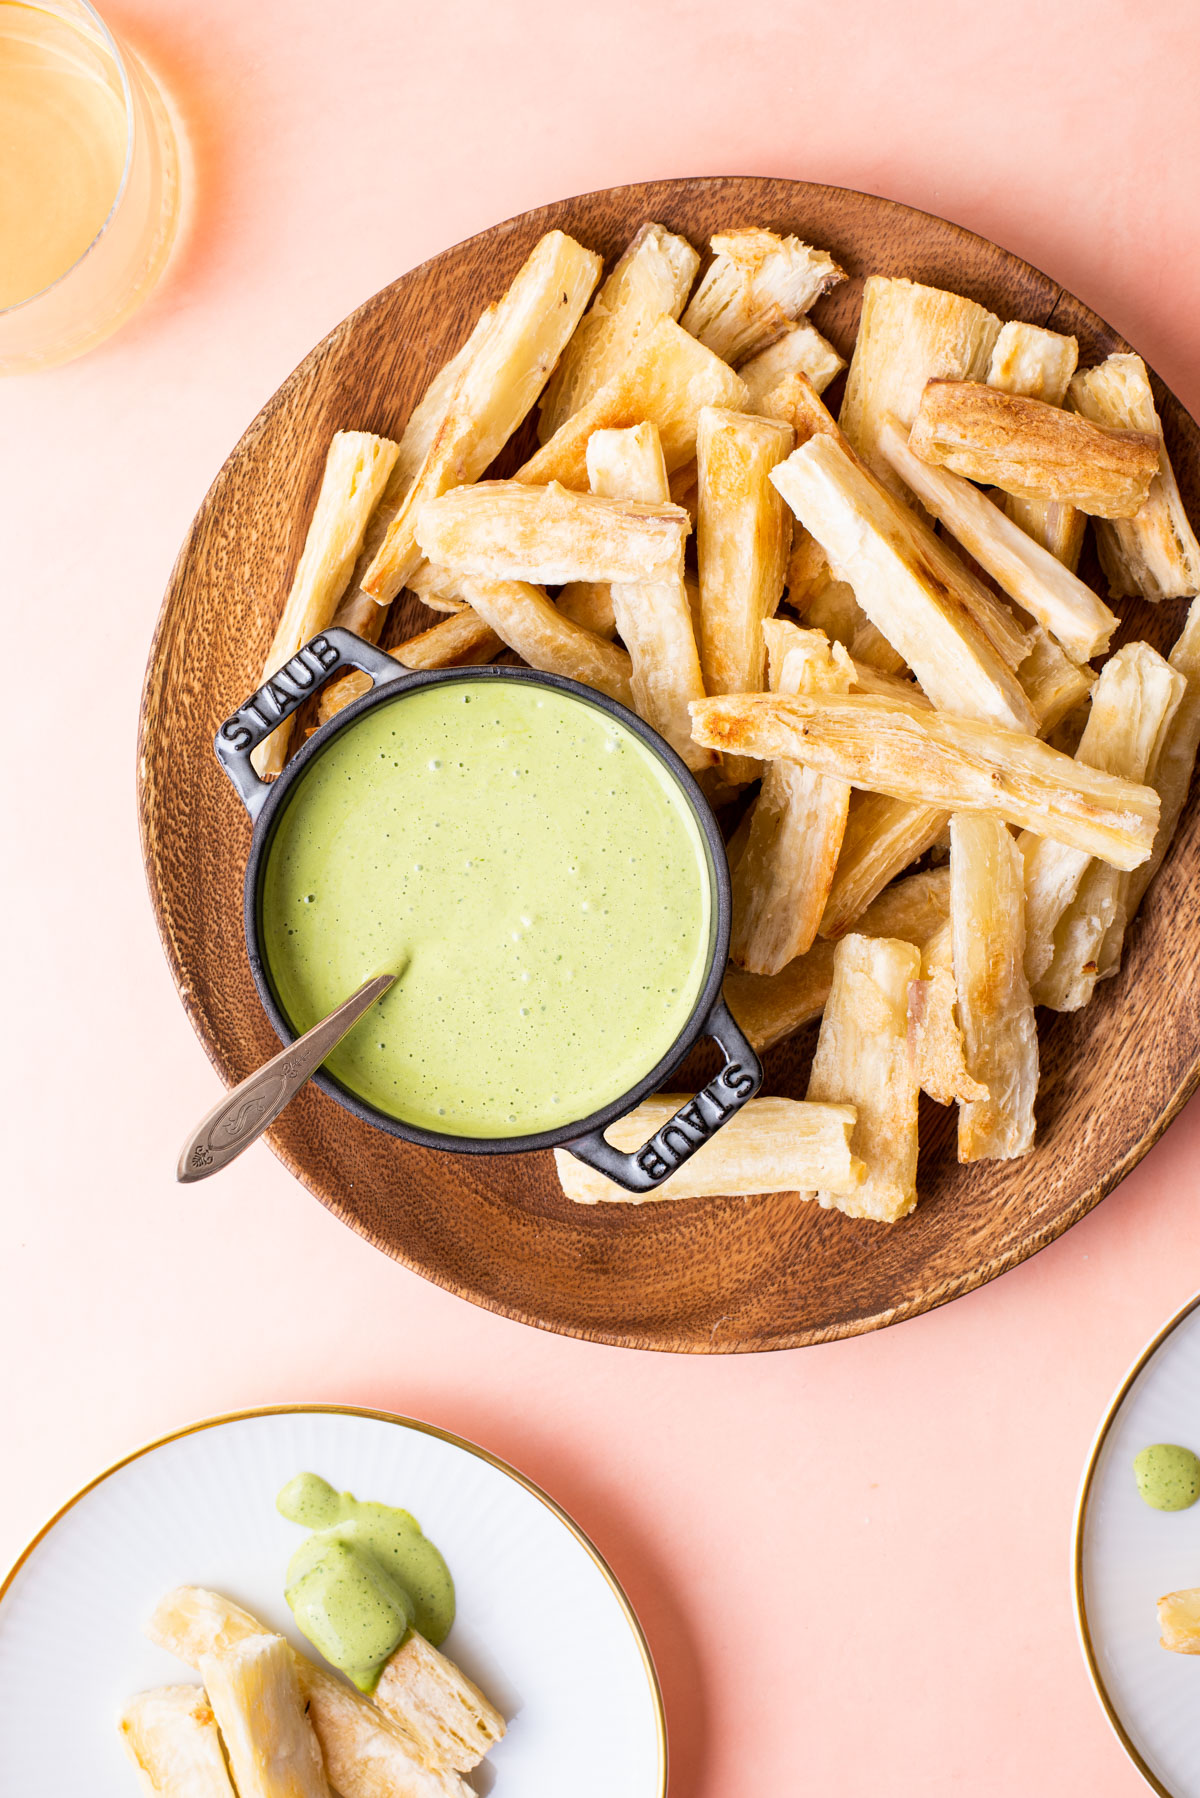 Baked yuca fries with creamy cilantro dip on a wooden plate on a pink table.